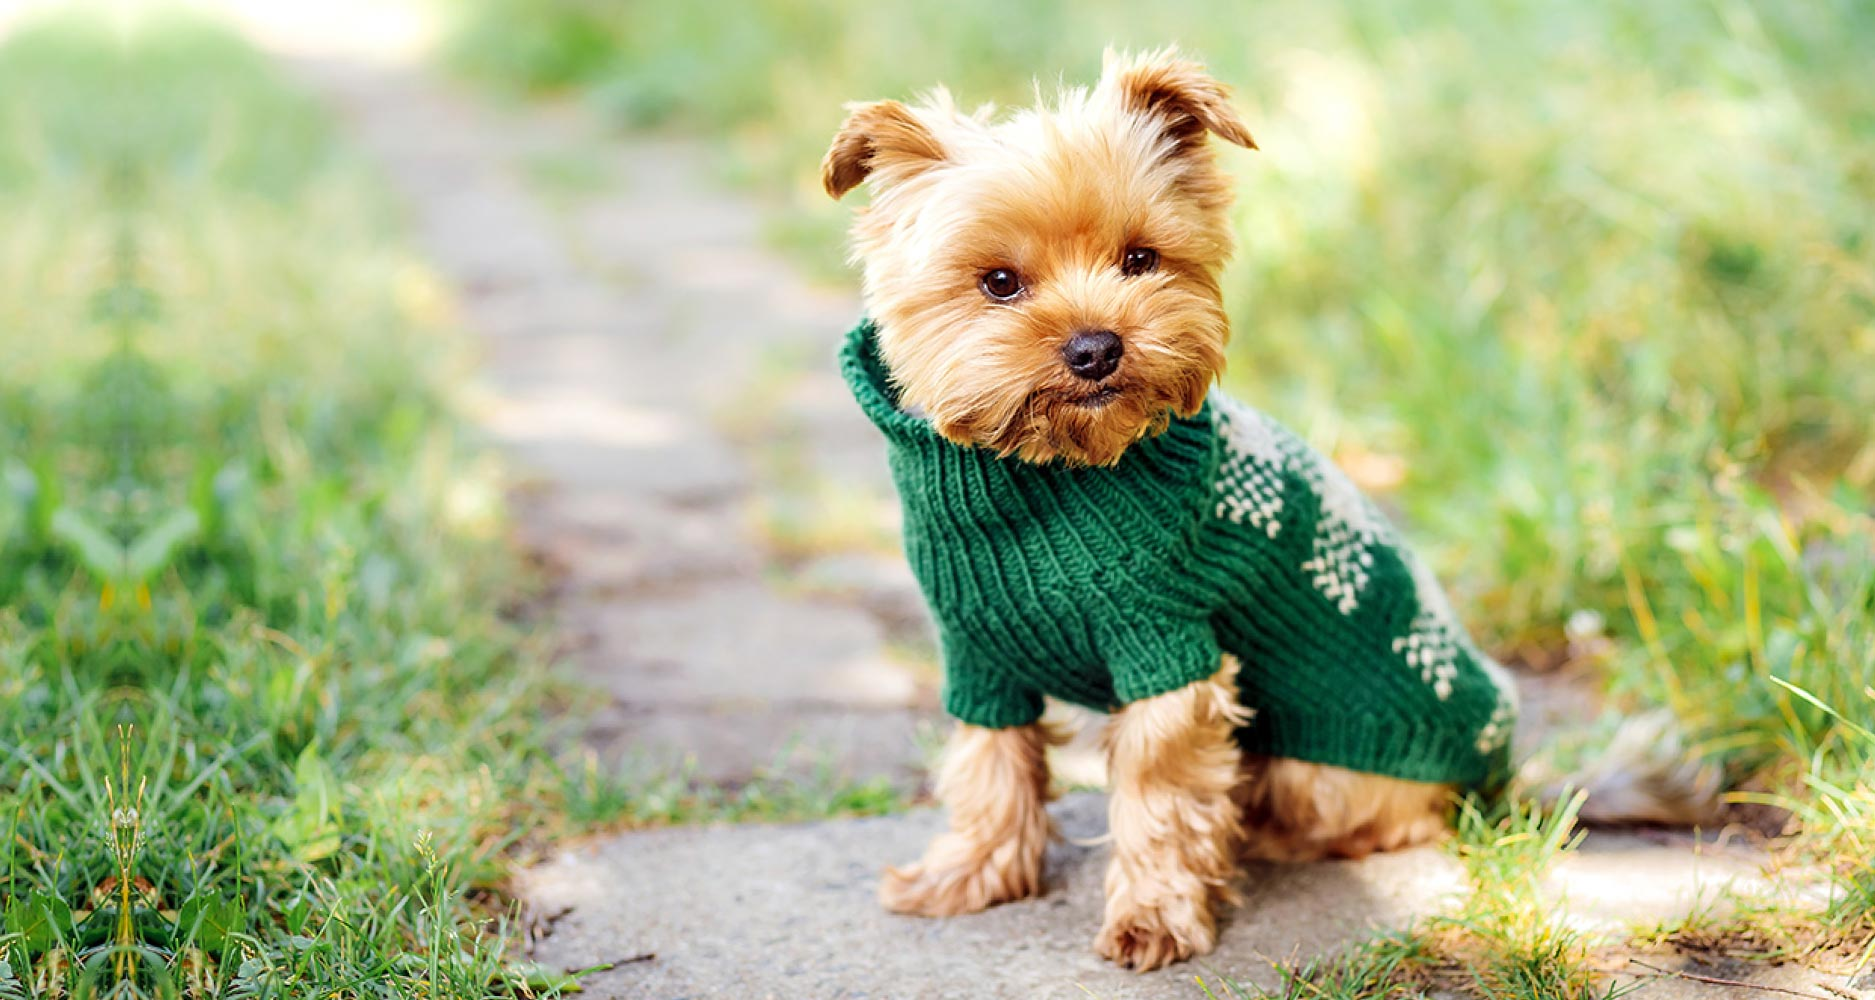 Should Dogs Have And Wear Clothes? - PetlifeCA